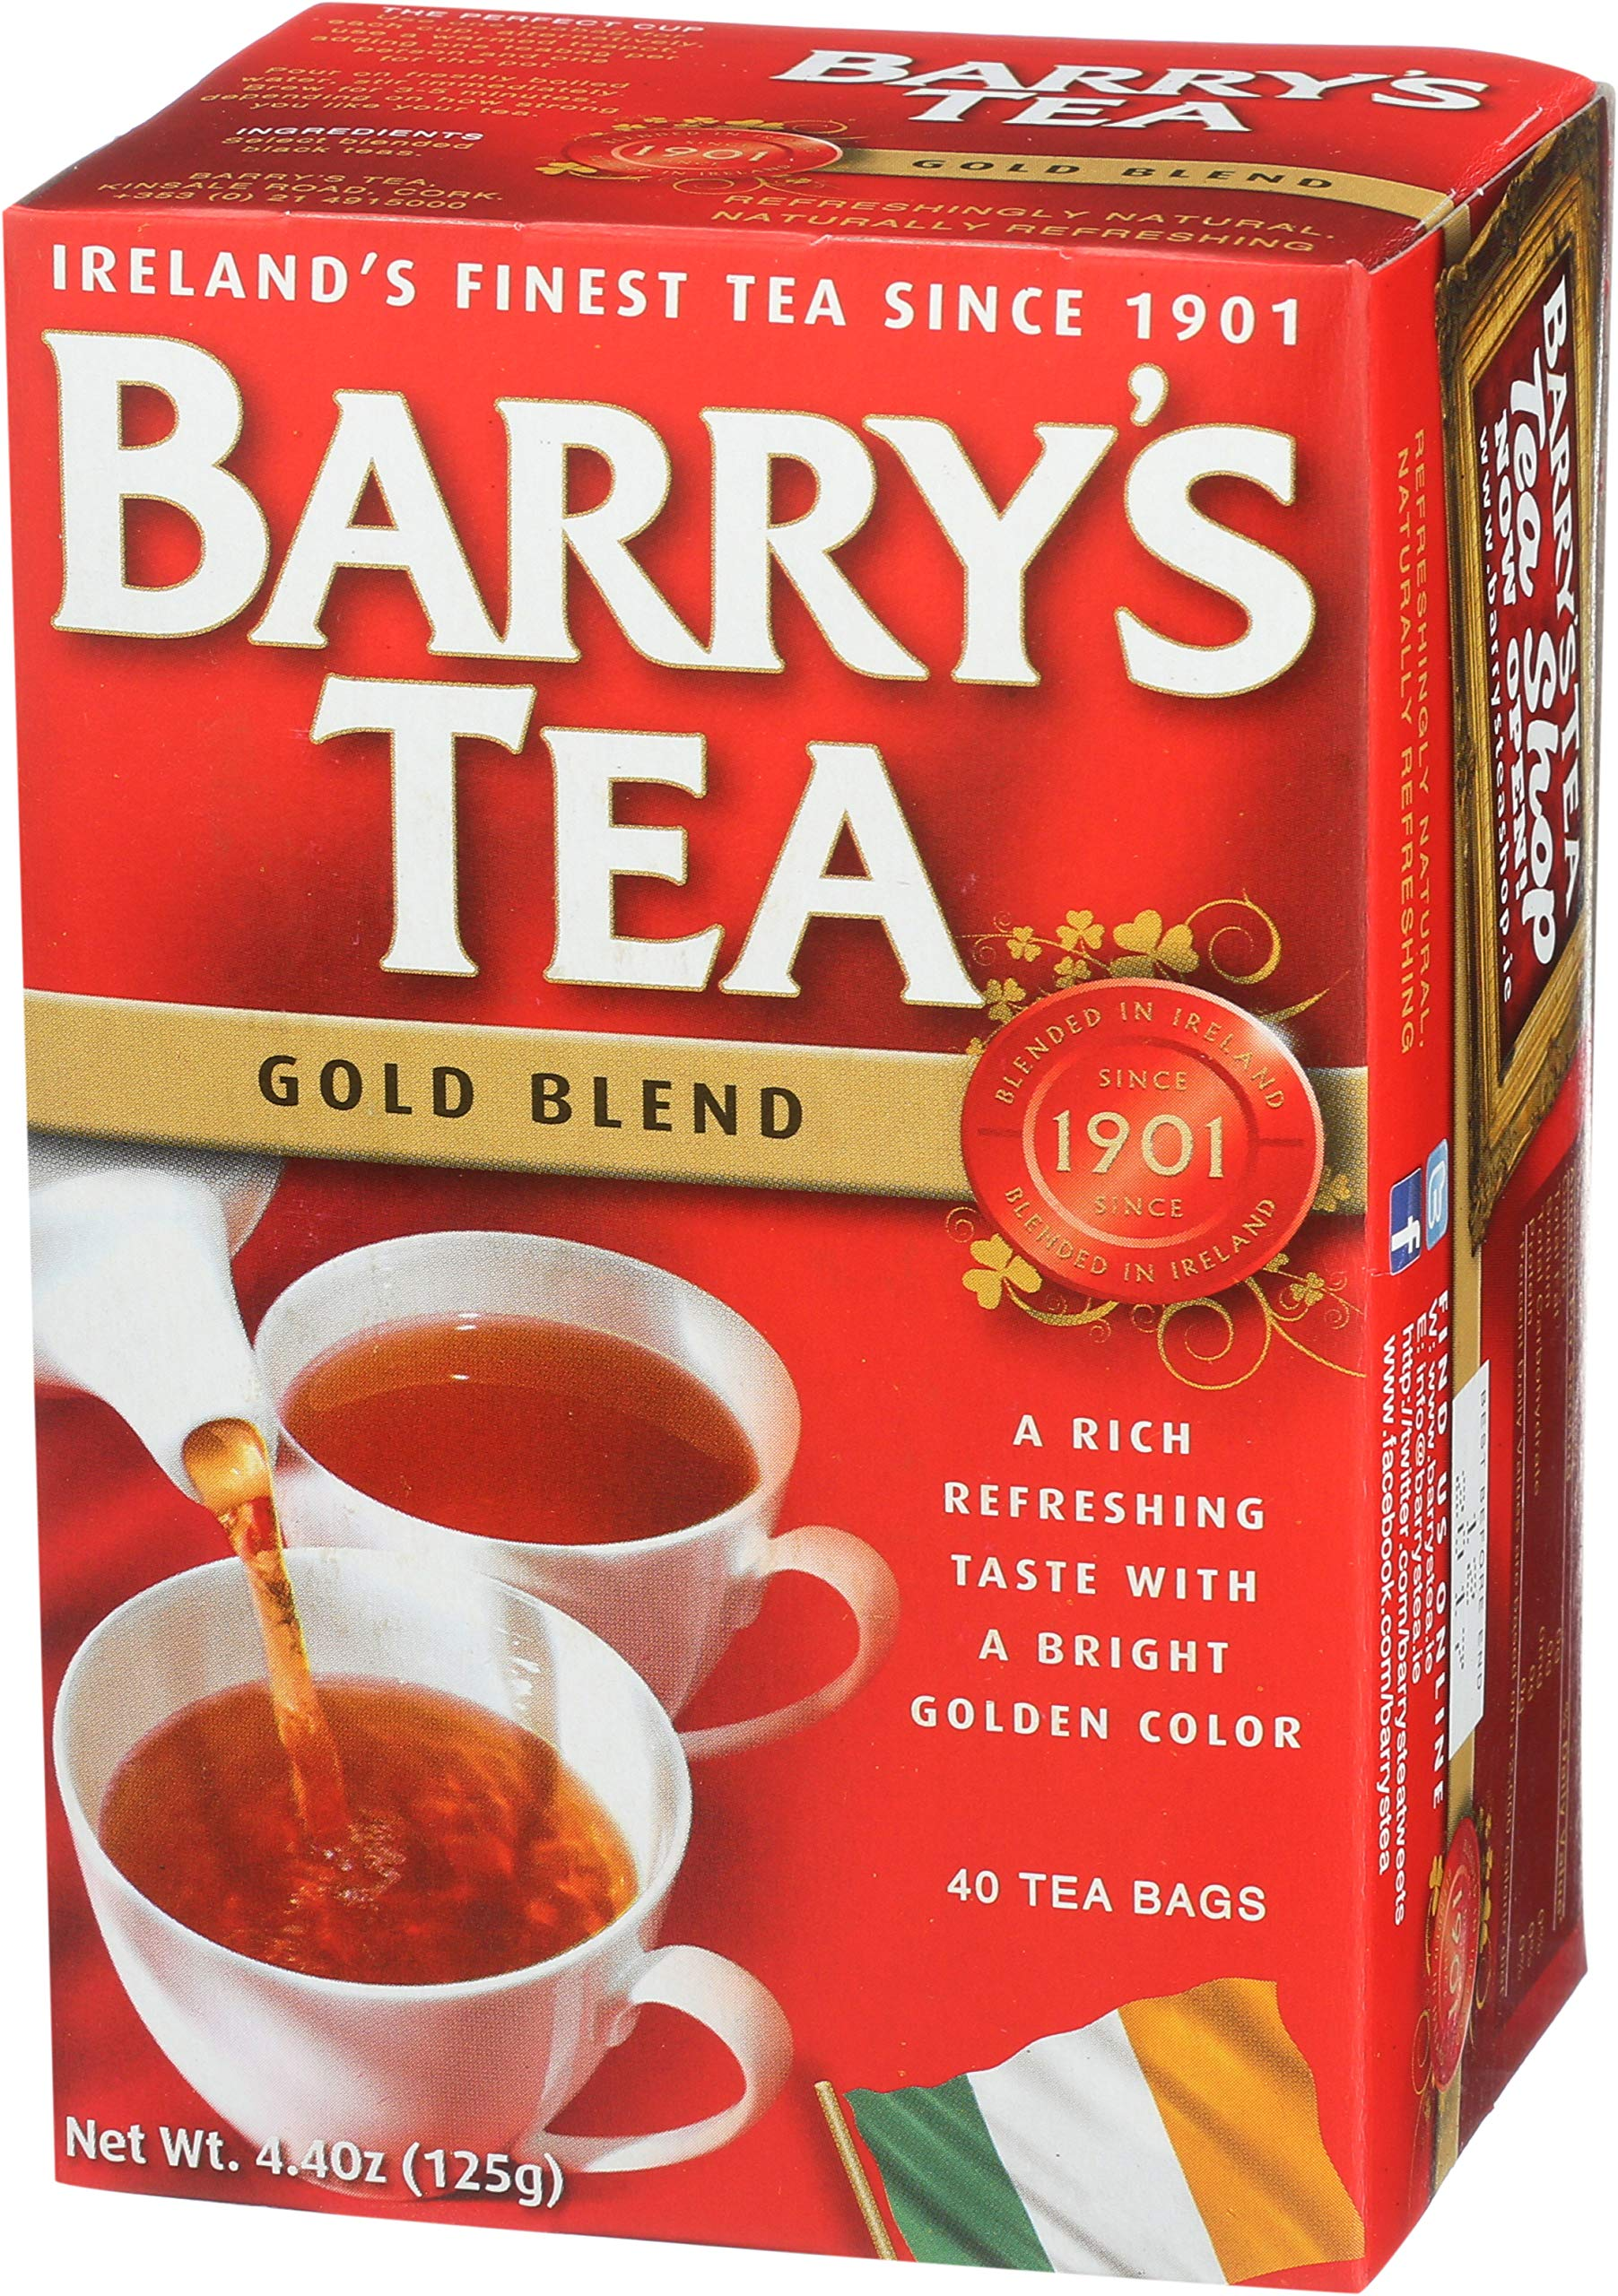 Barrys Gold Blend Tea Bags, 80 Count, 8.8 Ounce (Pack of 6) by Barry's Tea